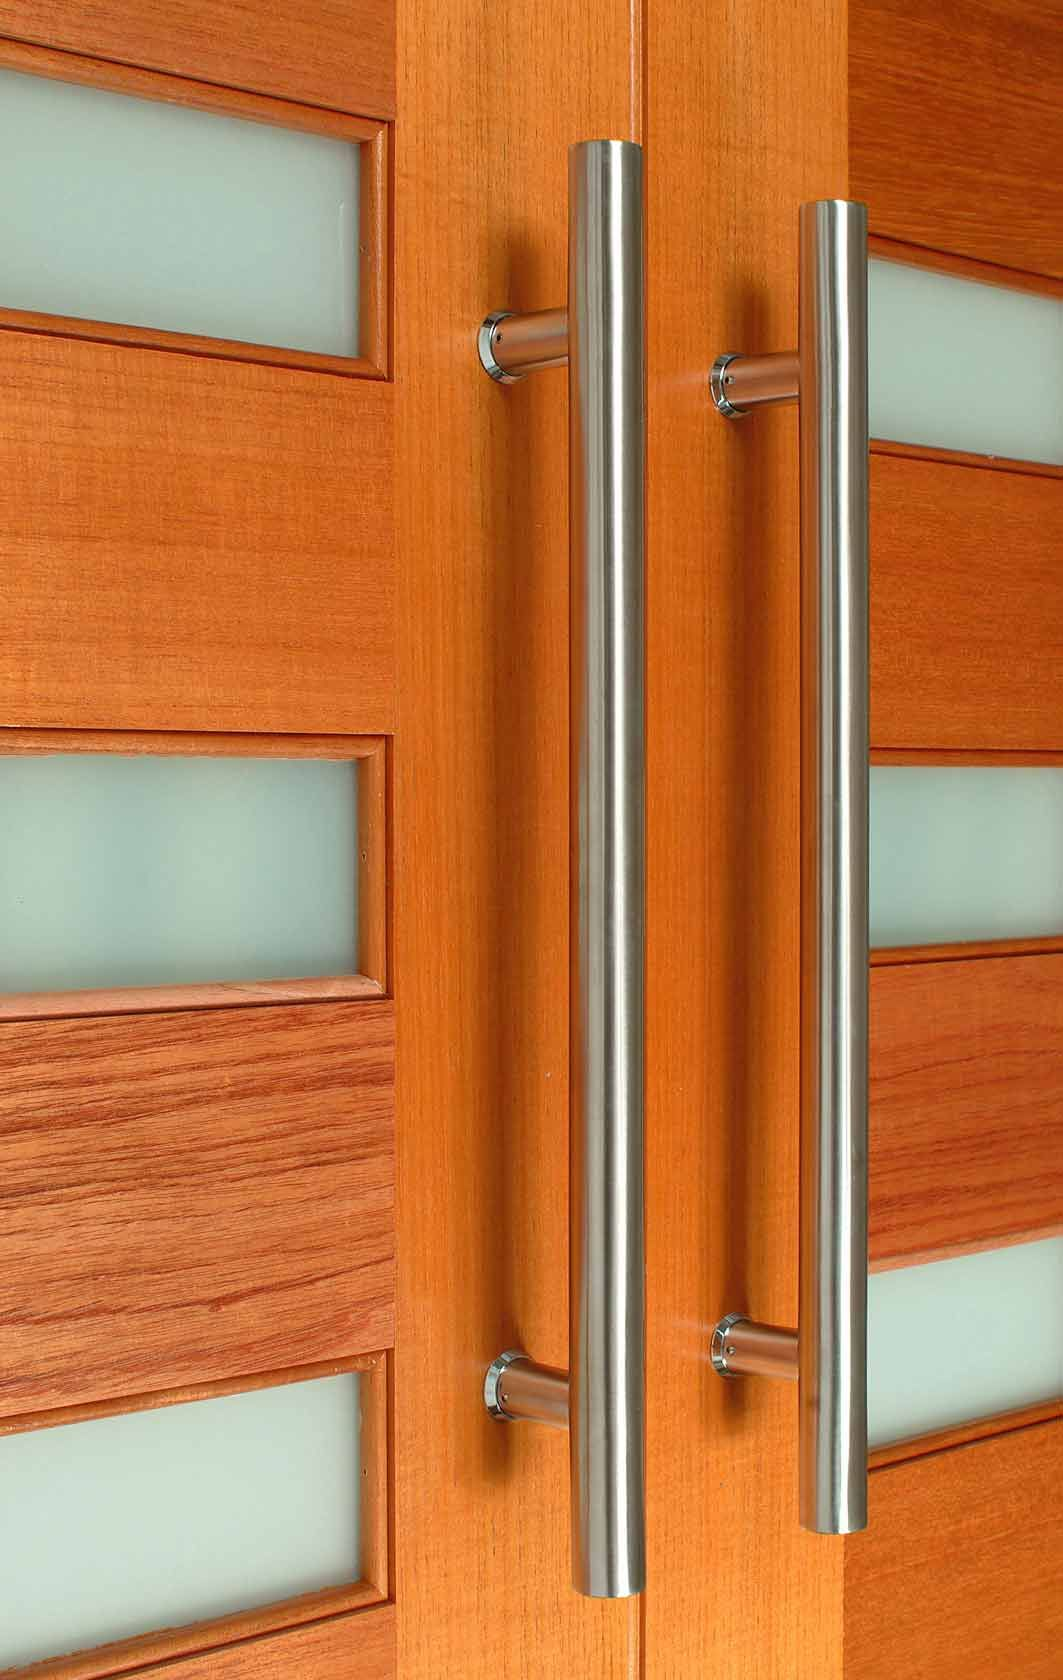 The Apollo front door pull handle is made from Stainless Steel ...